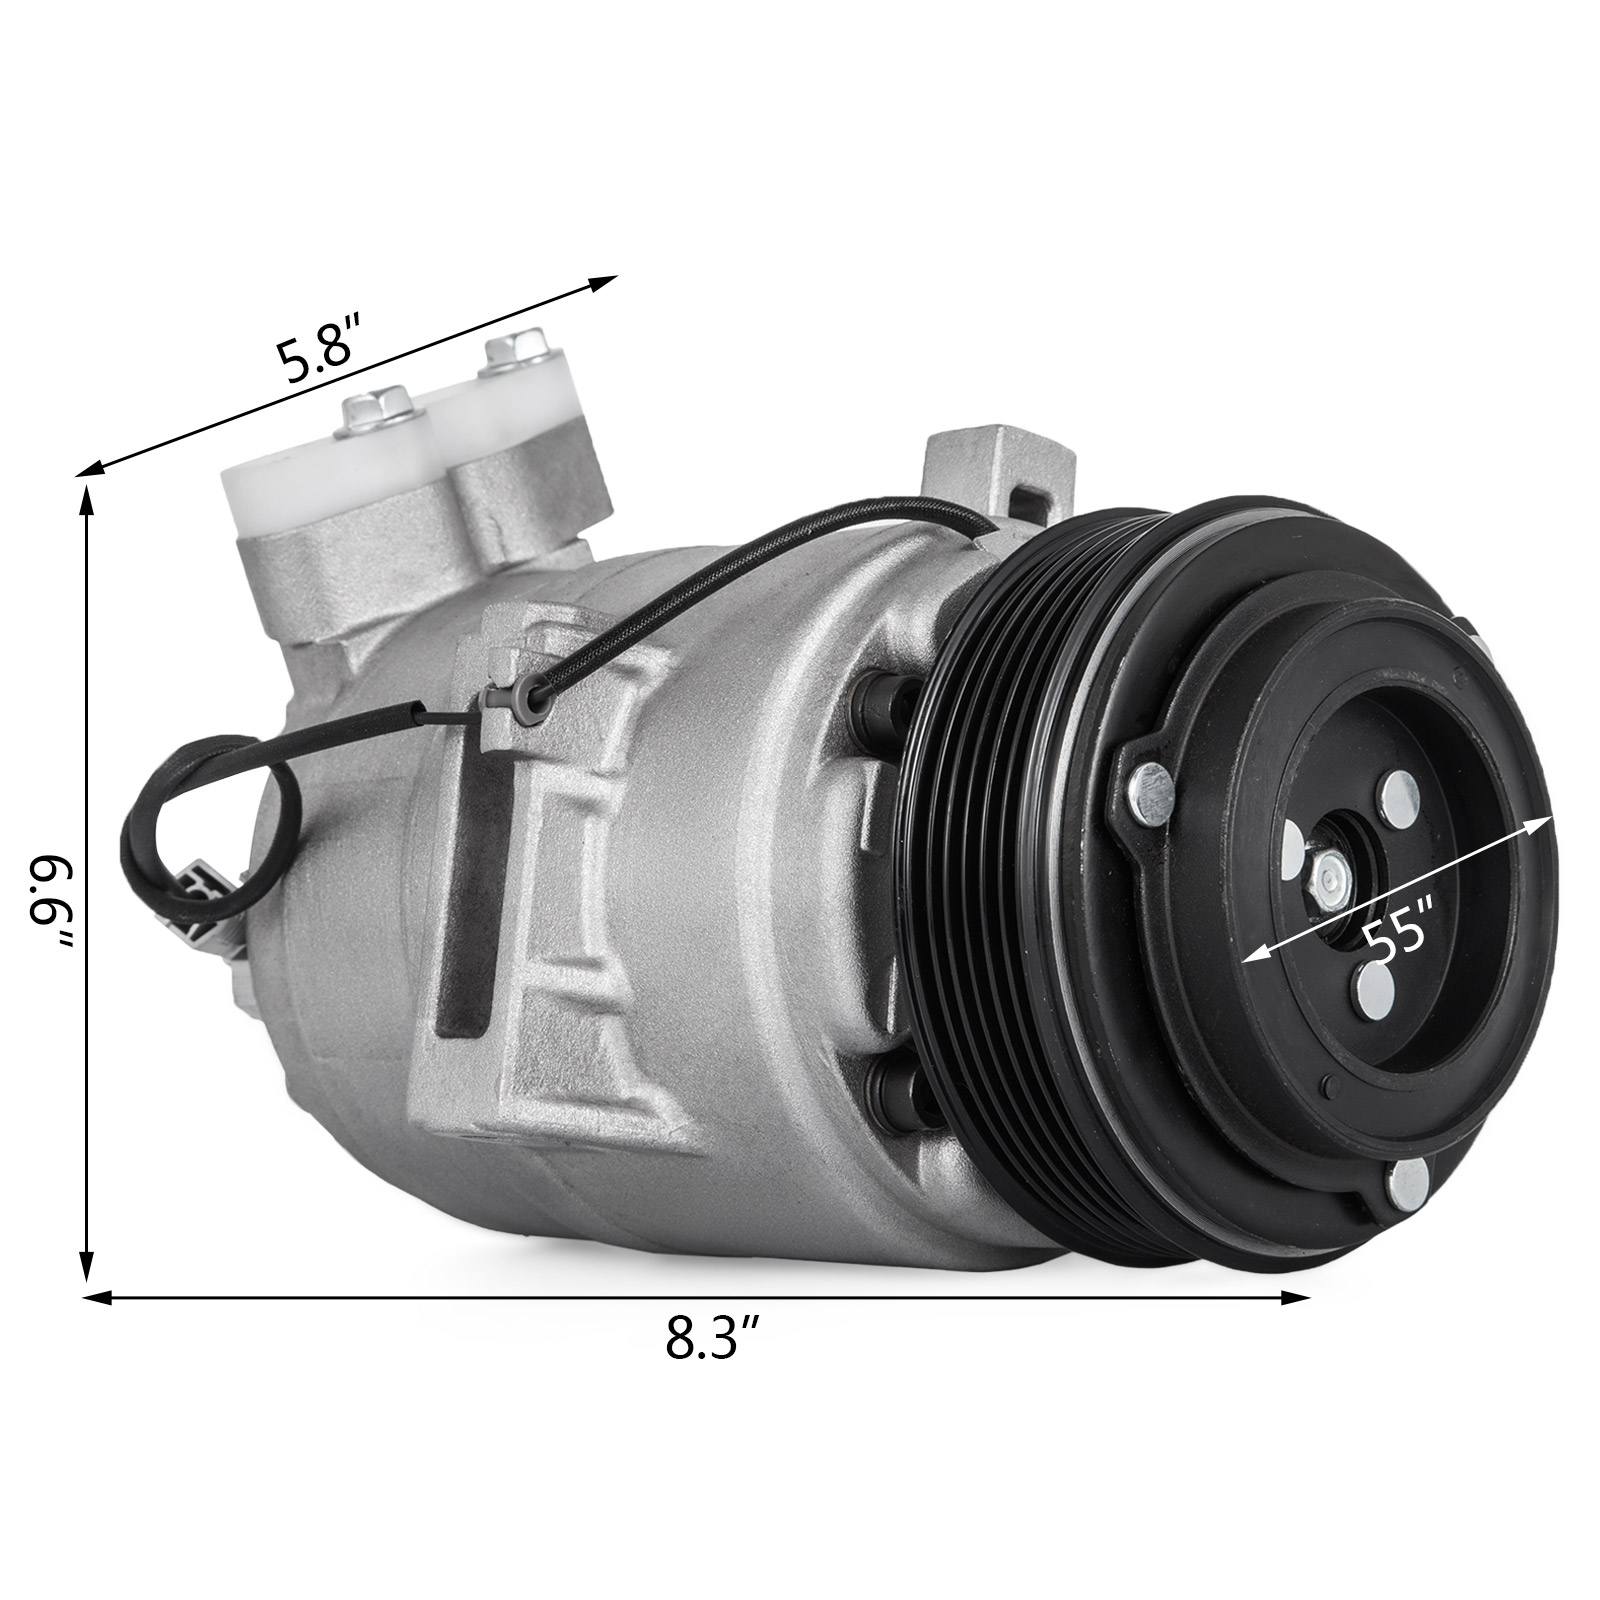 SET A//C Compressor-DKS17D Assembly UAC for 2003-2008 Mazda 6 2.3L-L4 Great